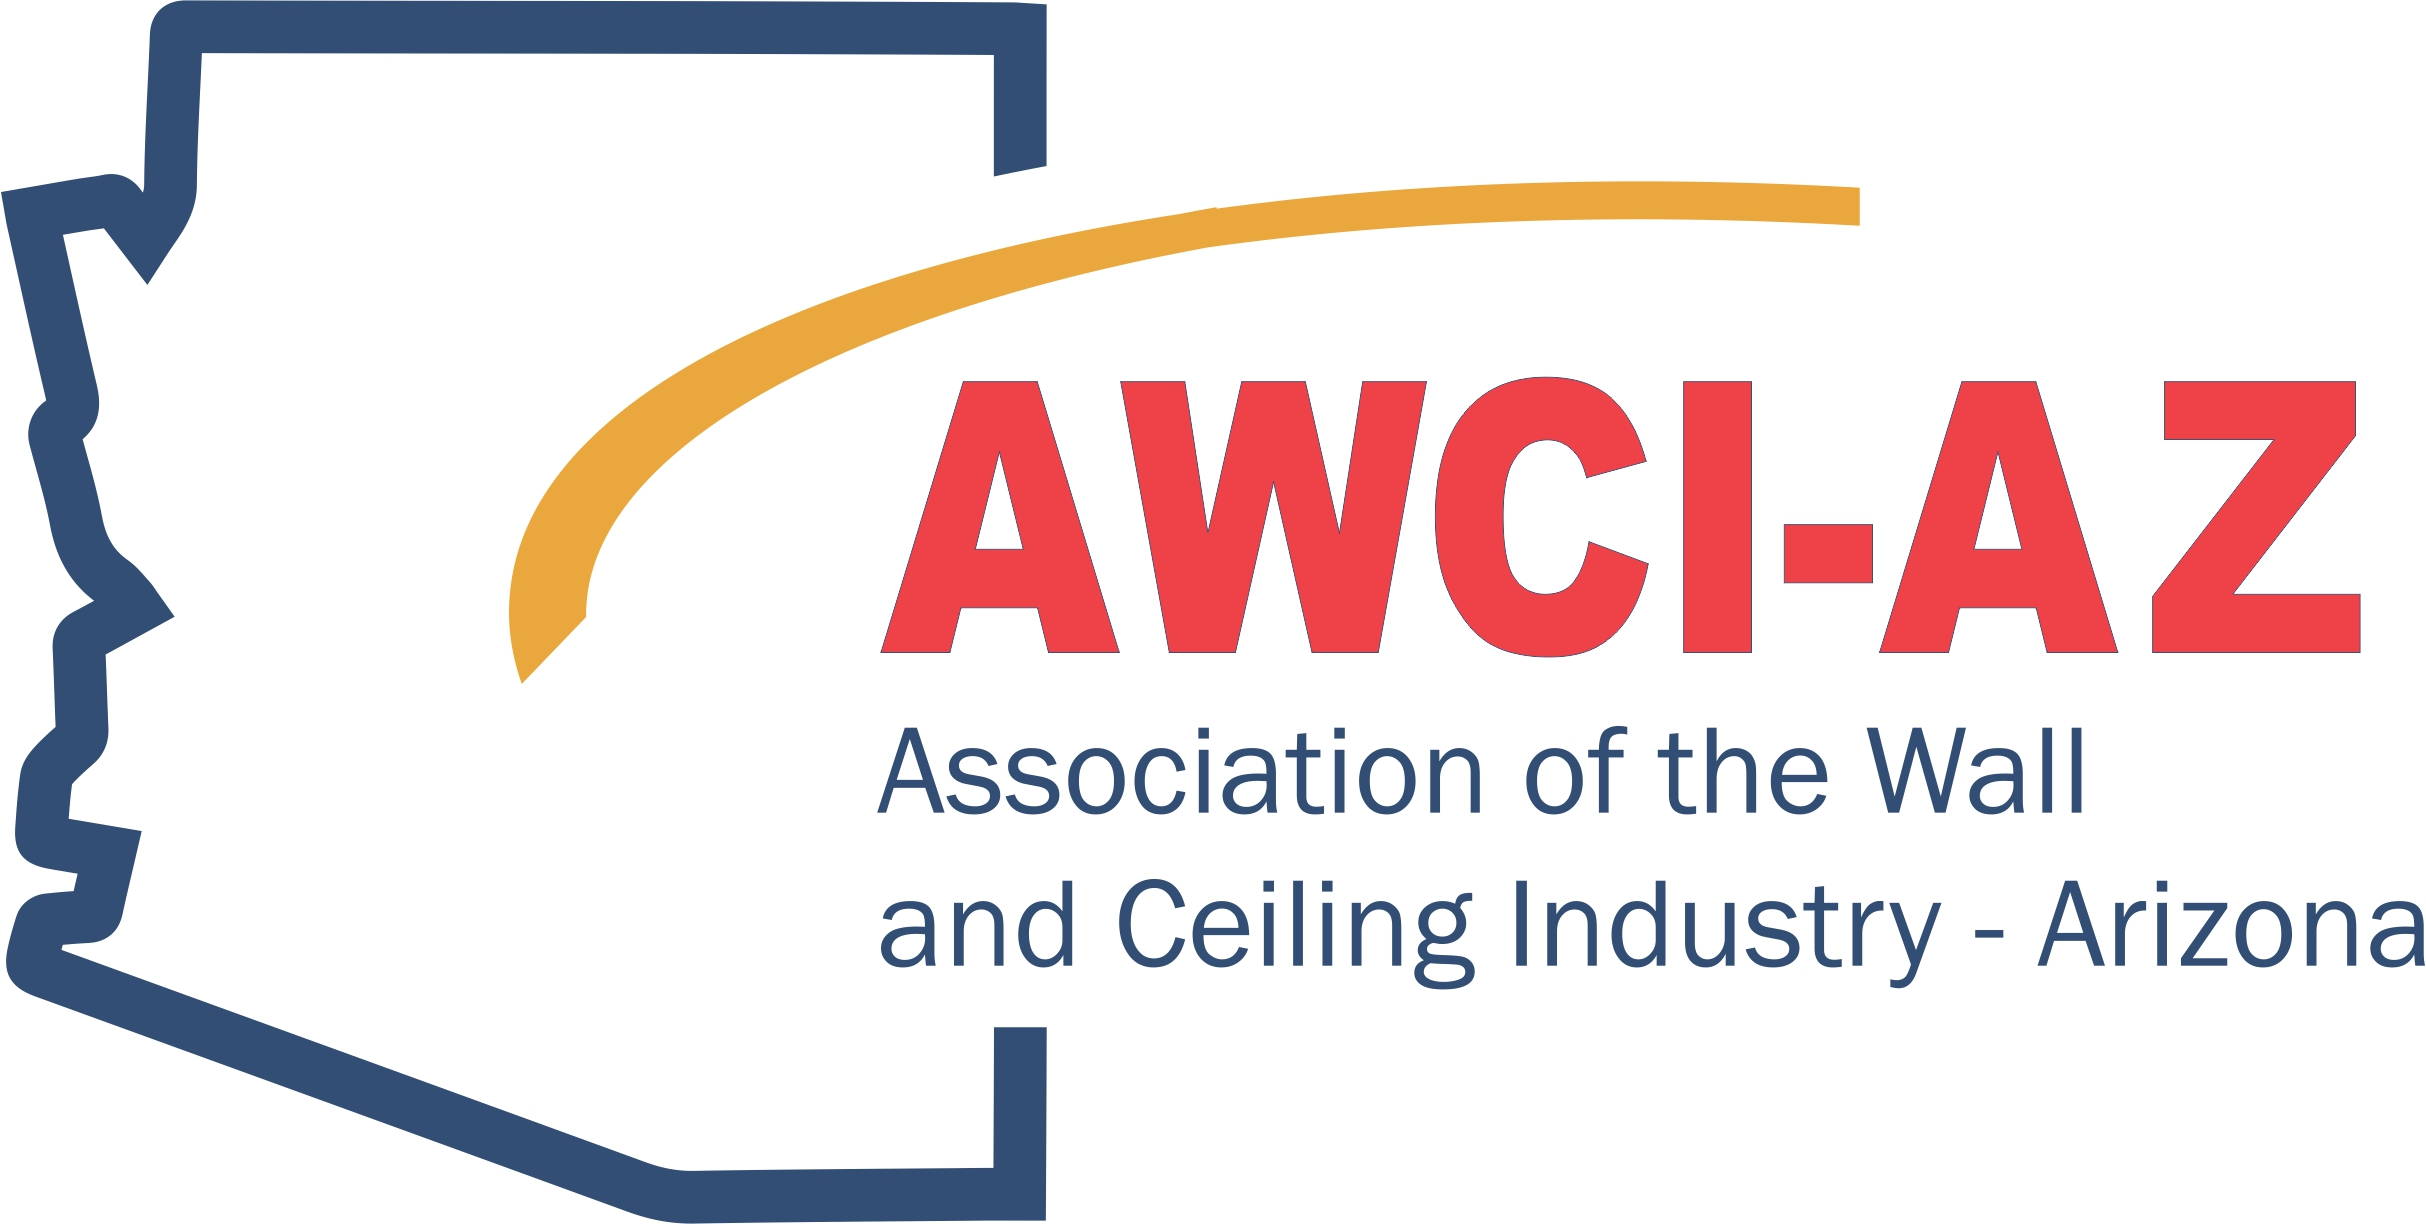 Association of the Wall and Ceiling Industry – Arizona Logo